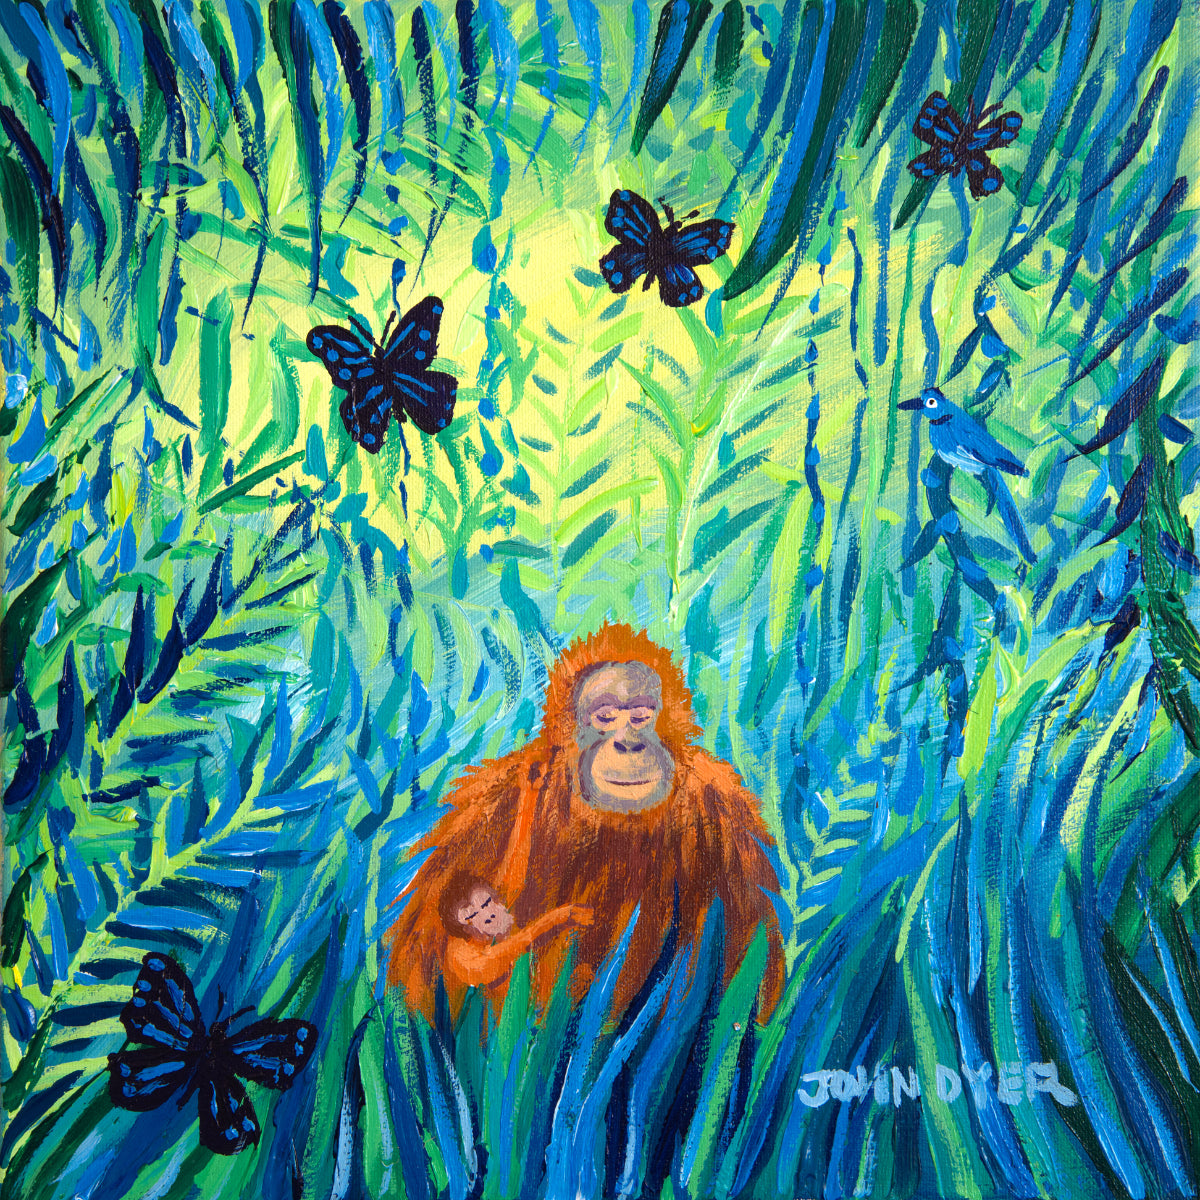 John Dyer Painting. Mother and Child, Borneo Orangutans